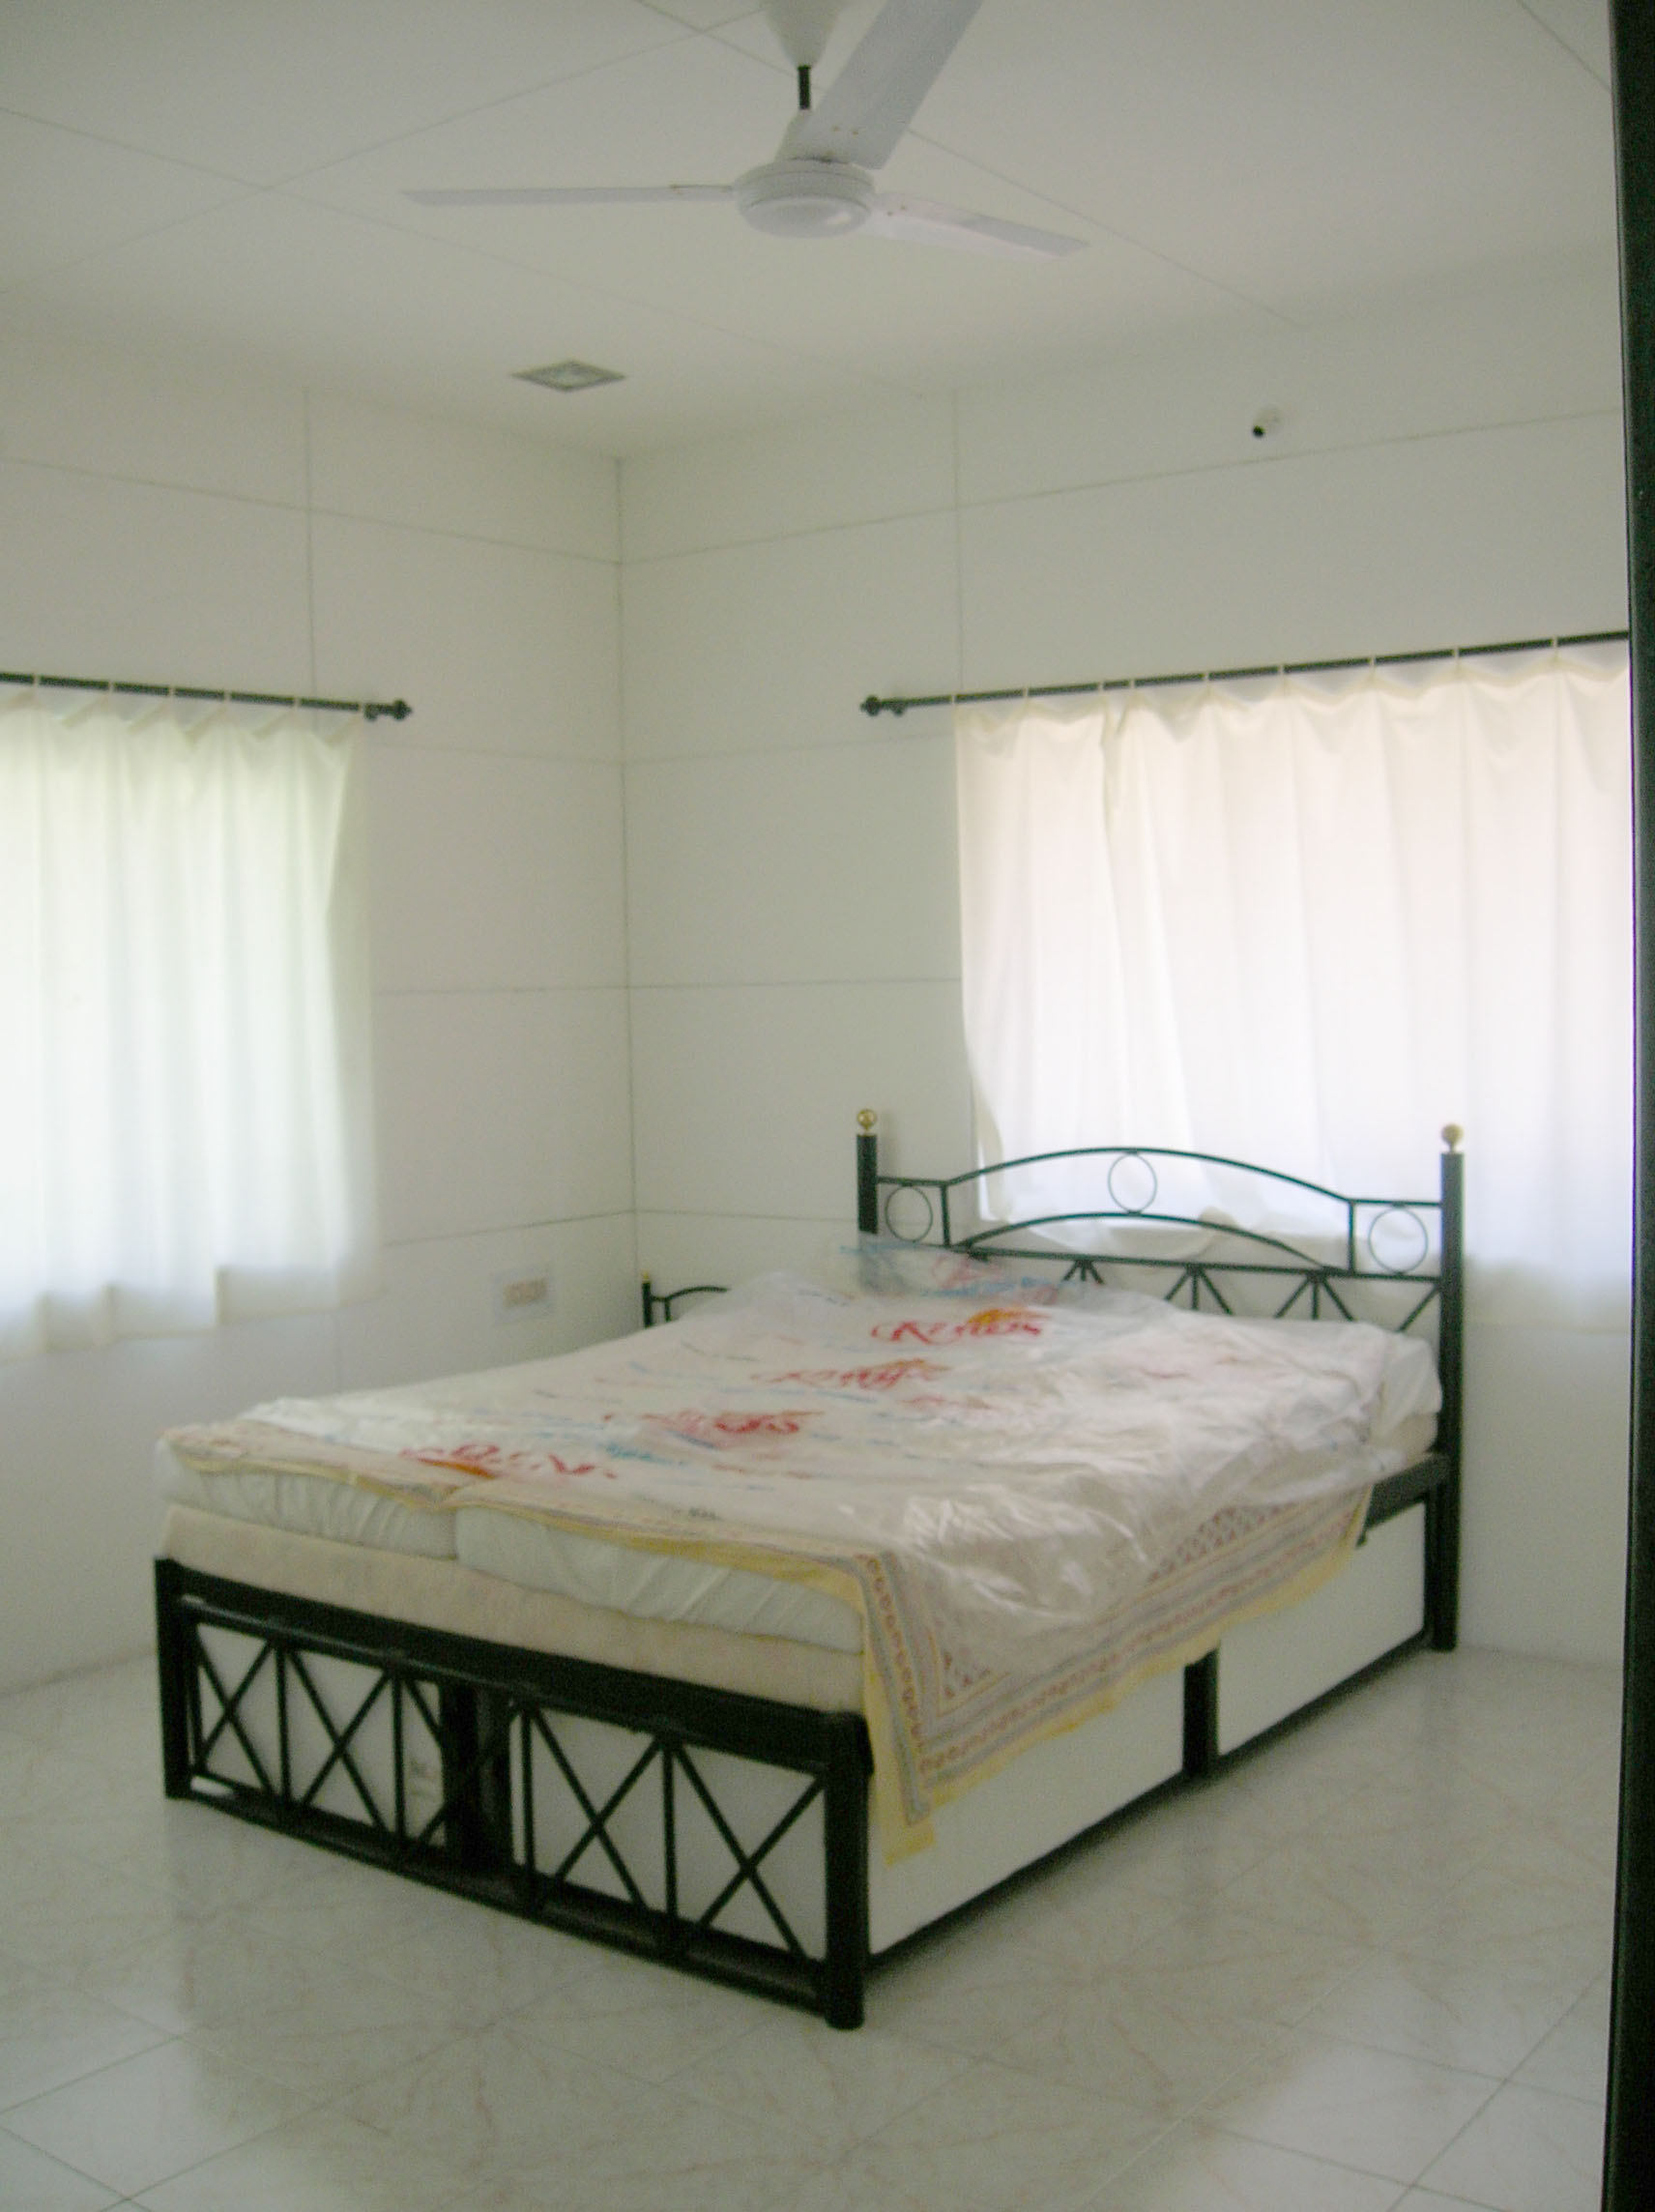 bedroom-cemply-flat-sheets